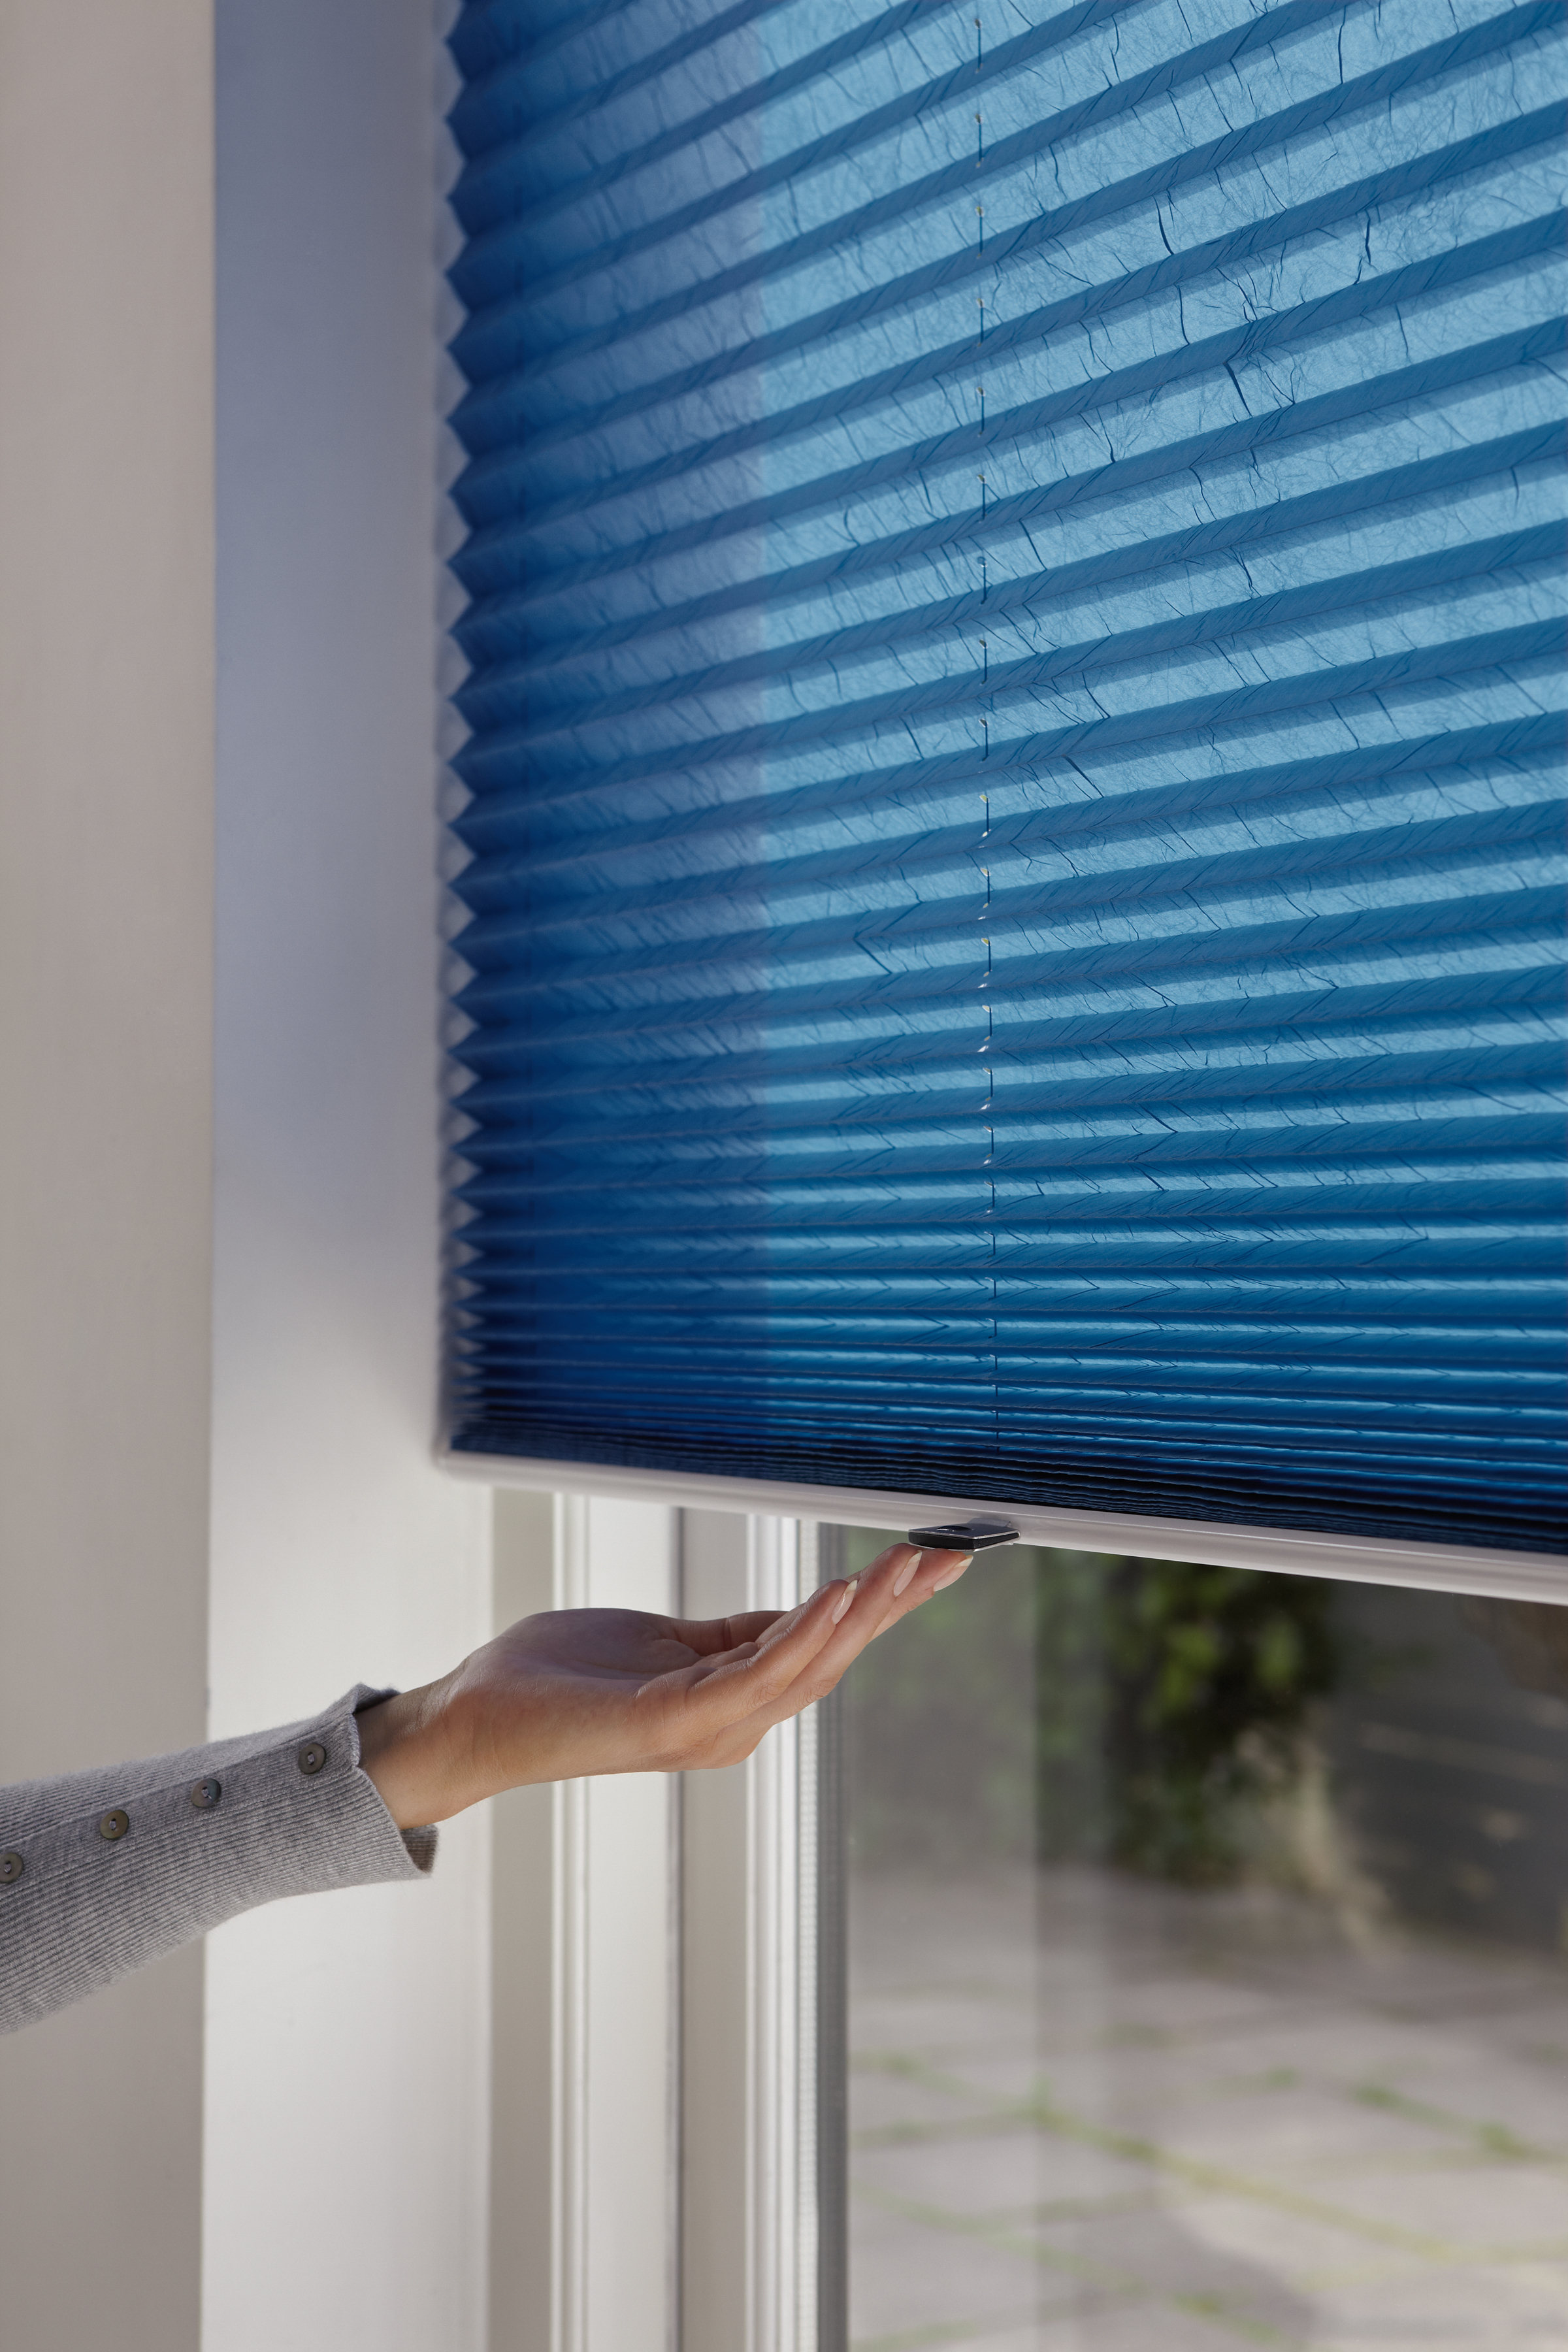 appealing door marvelous internal thermatru u styles enclosedinds of uk imgid glass pella pict casement large and windows ideas window mini for sliding cleaner two blinds gorgeous